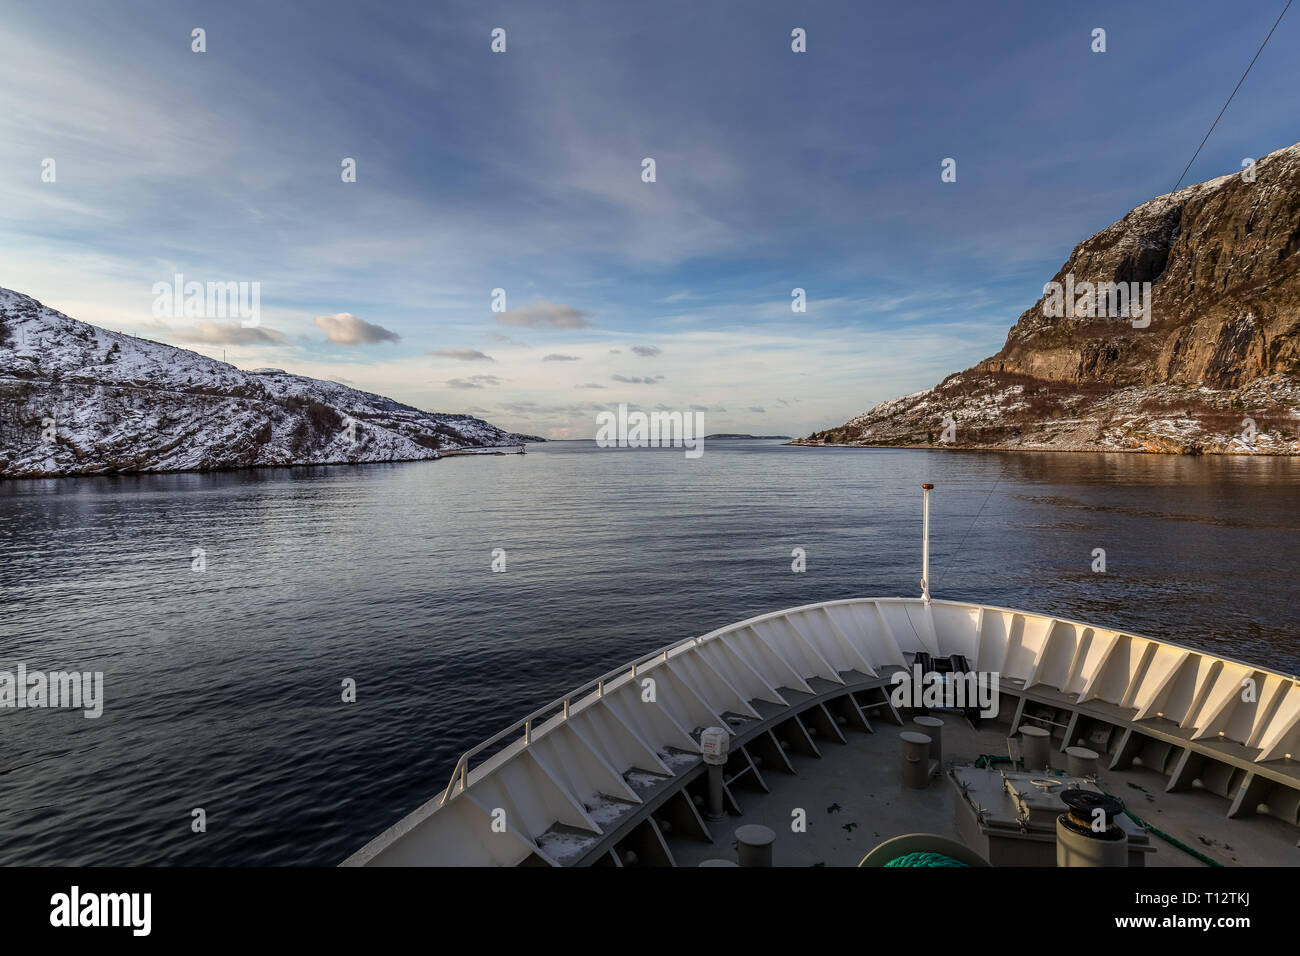 Cruising through the Norwegian Fjords during the winter months. - Stock Image